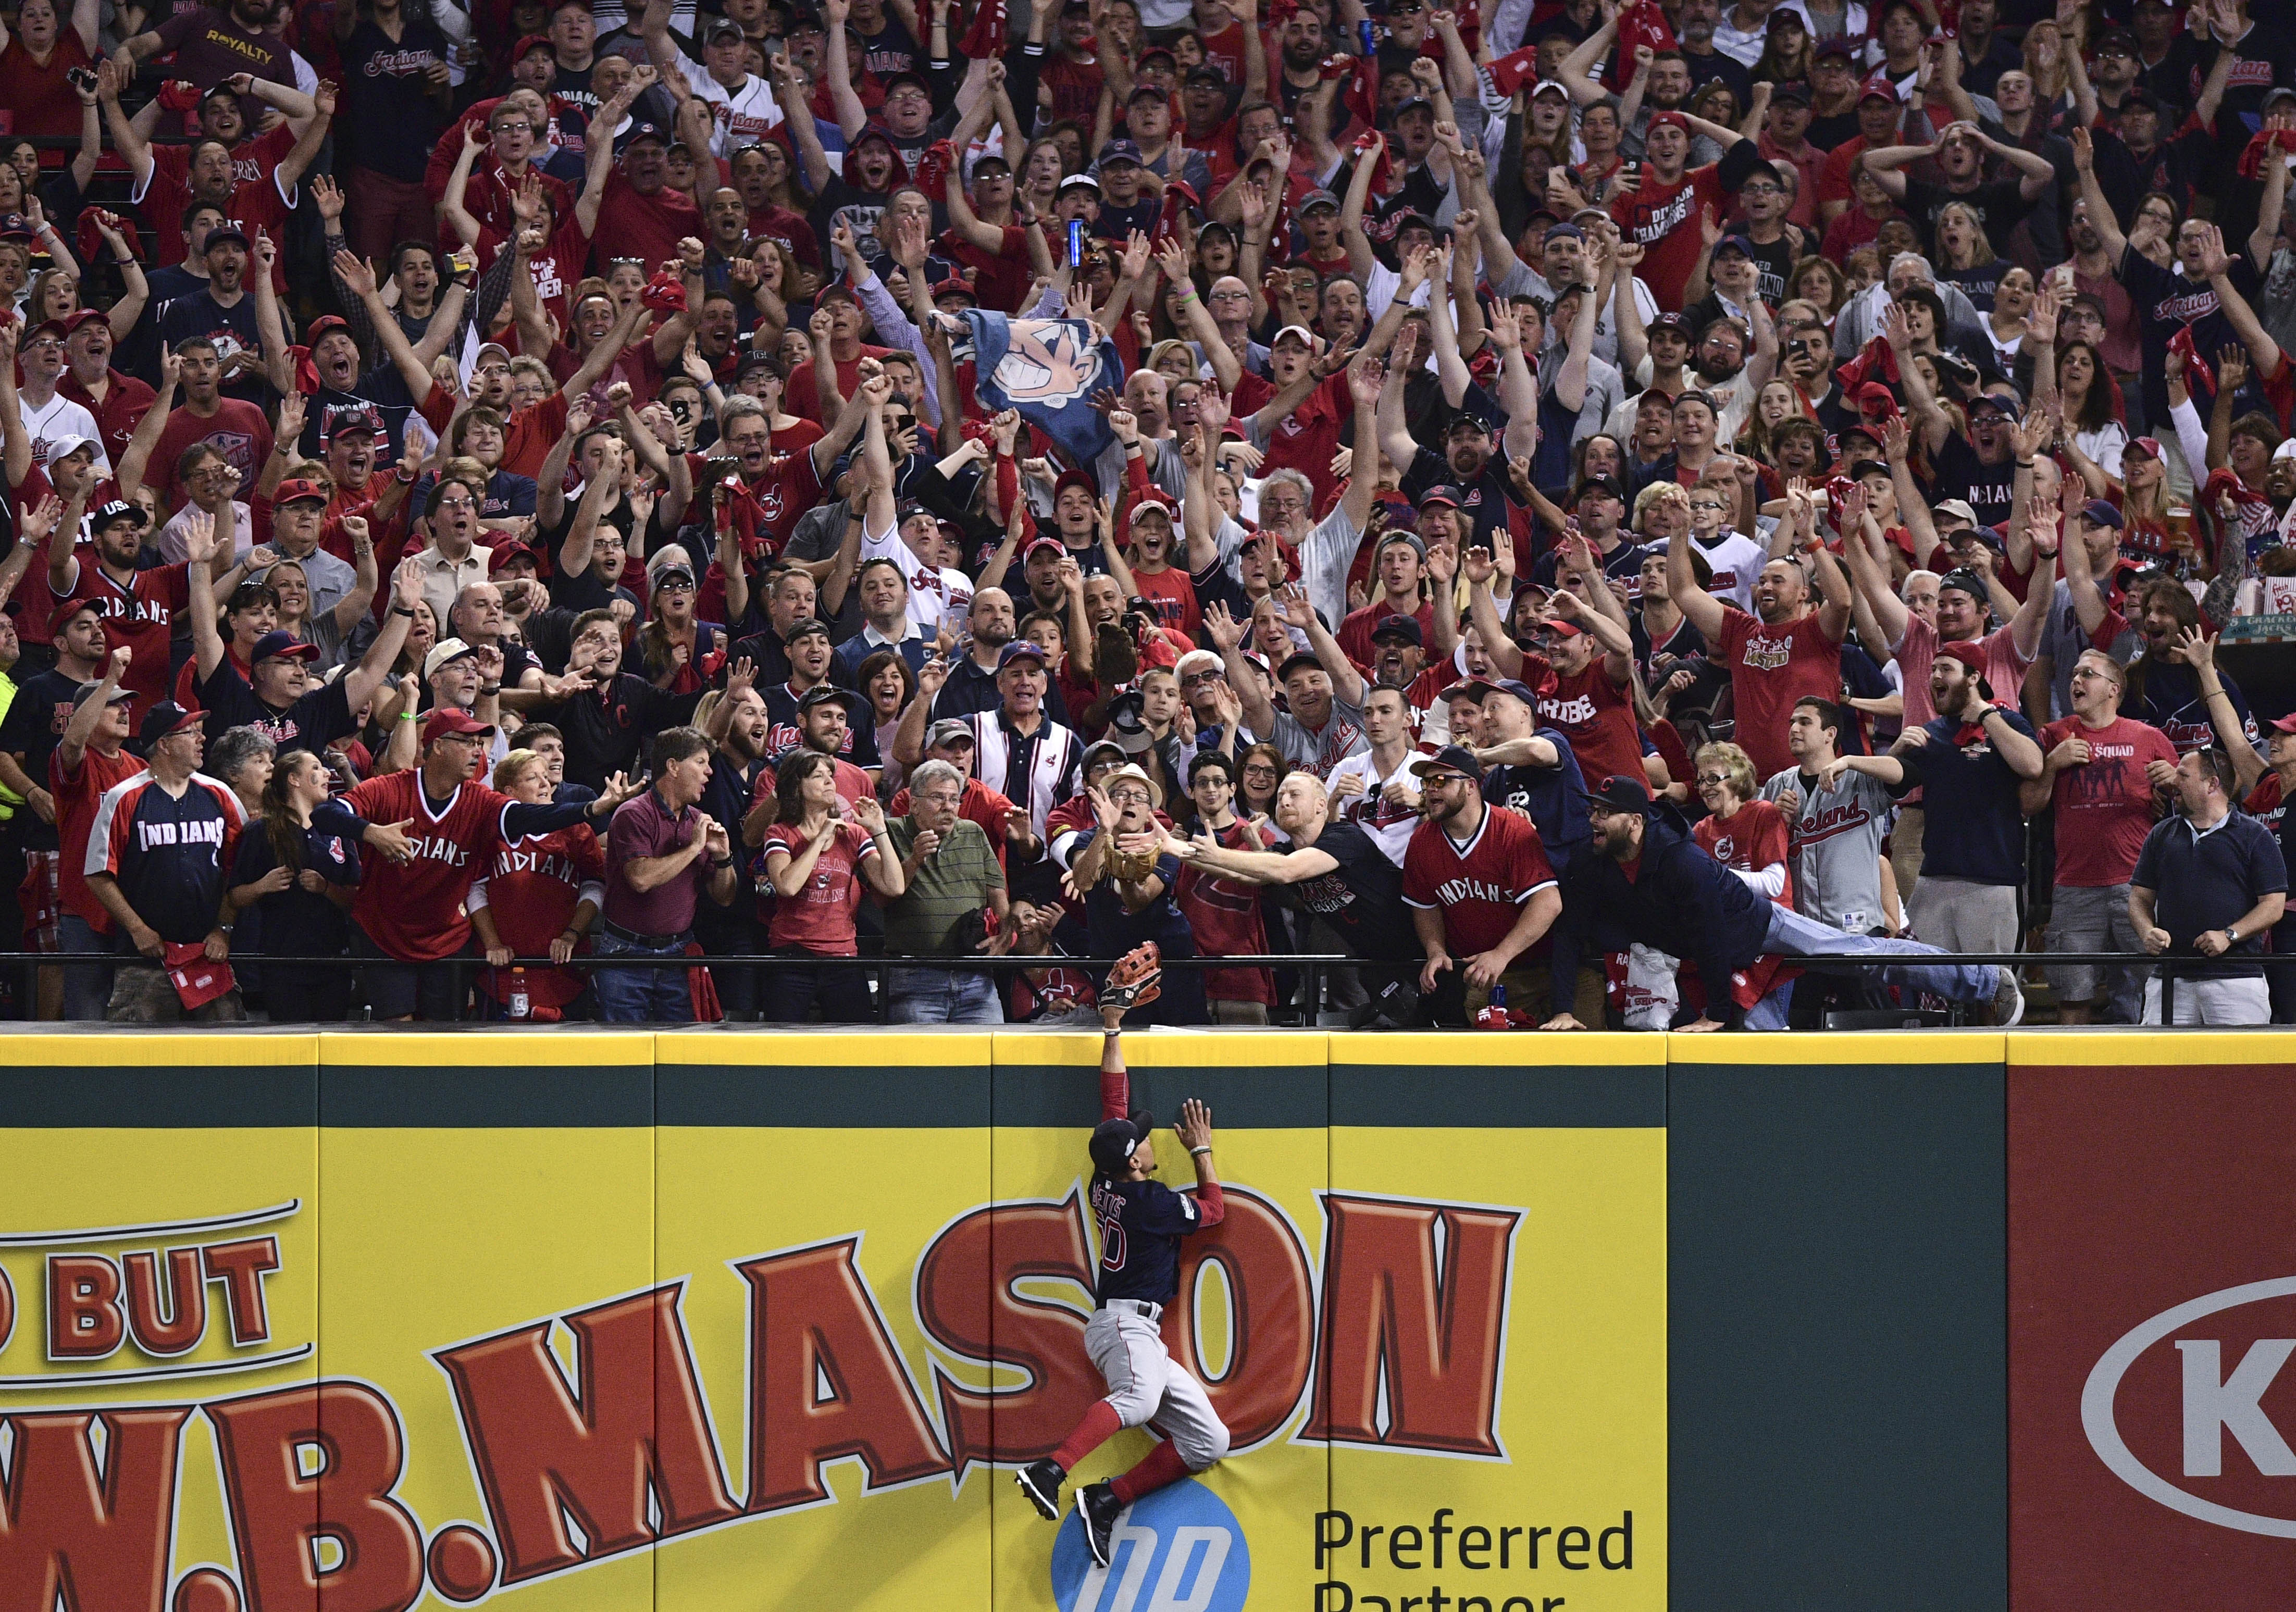 Fans try to for a Cleveland Indians' Francisco Lindor home run ball as Boston Red Sox right fielder Mookie Betts attempts to make a catch in the third inning as during Game 1 of baseball's American League Division Series, Thursday, Oct. 6, 2016, in Clevel